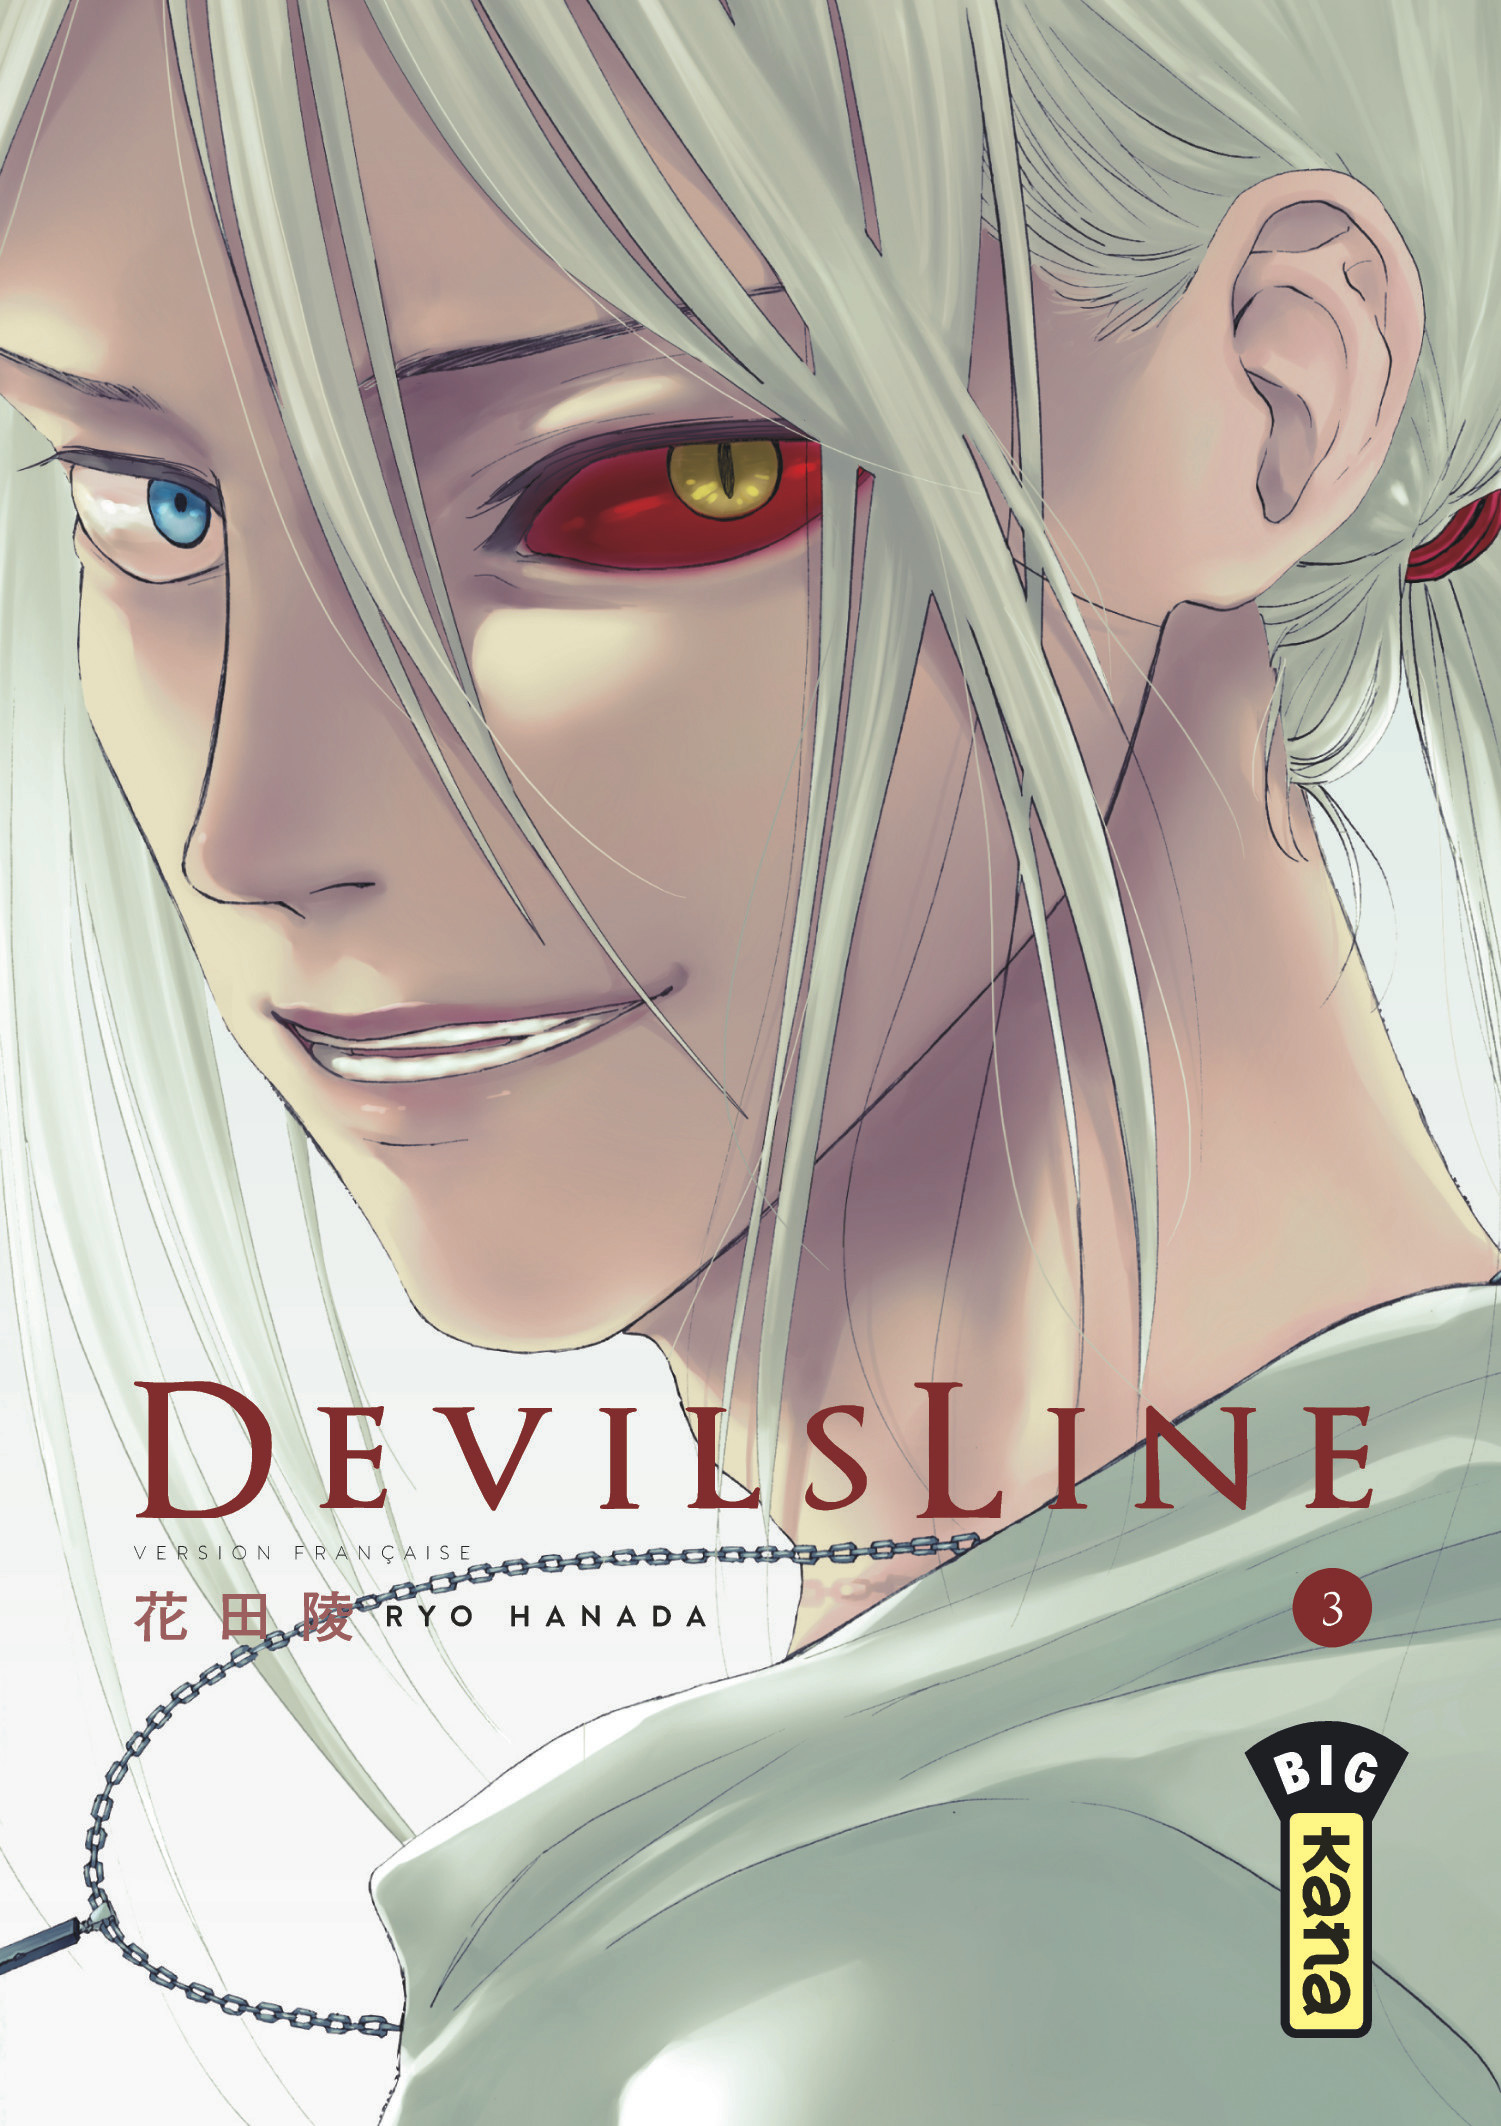 [ MANGA / ANIME ] Devil's Line // DevilsLine Devilsline-manga-volume-3-simple-232312